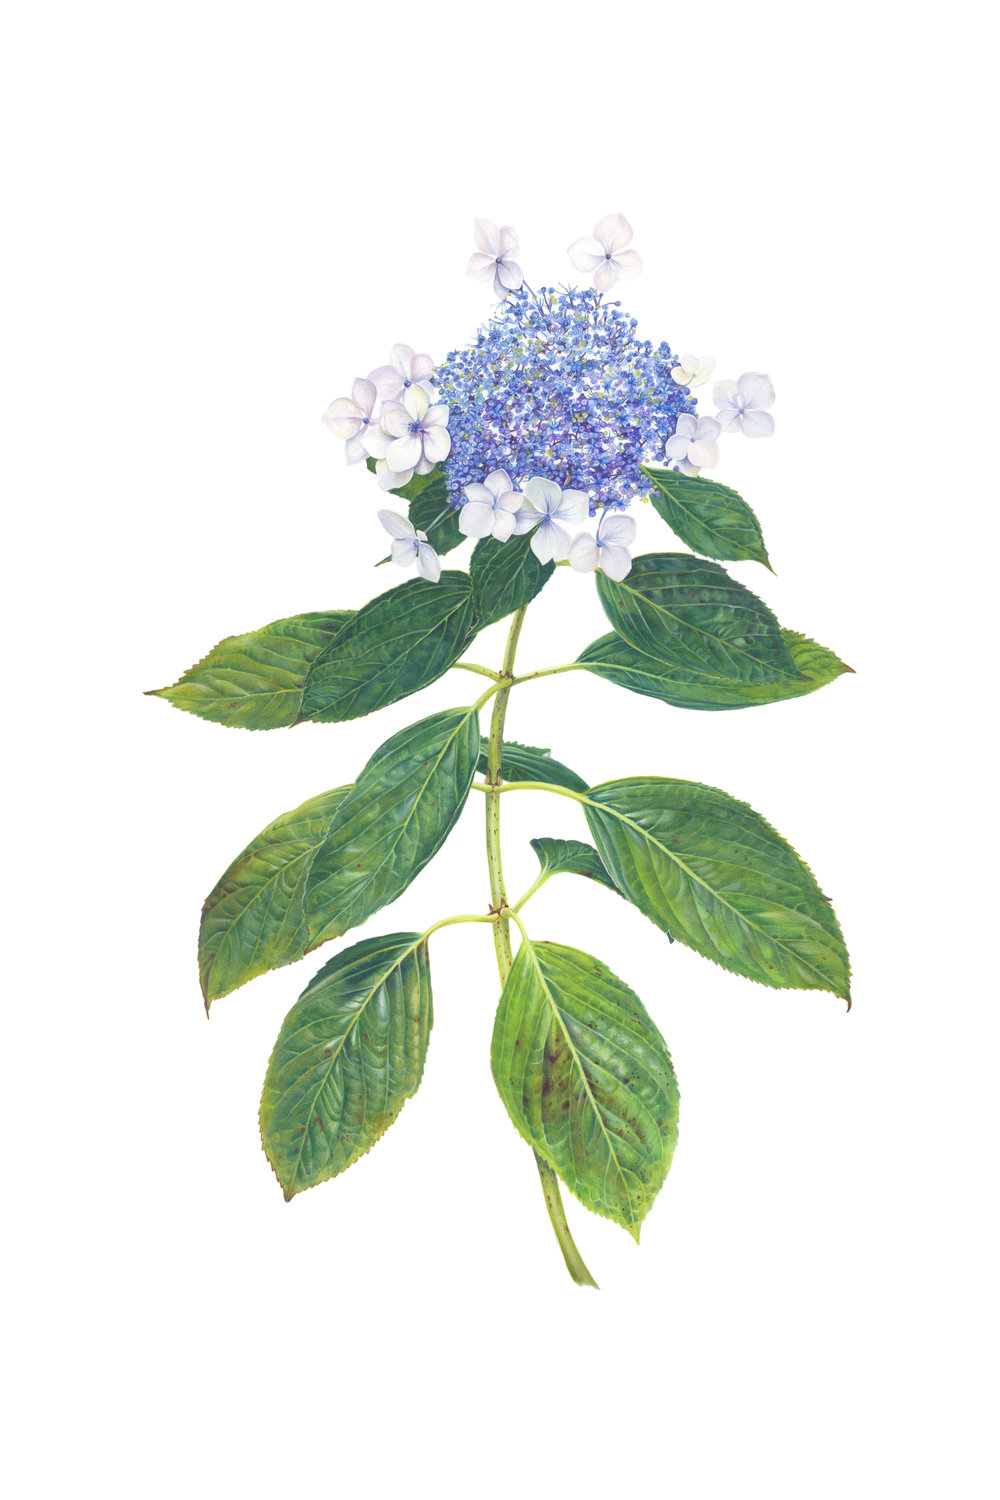 Sarah Jane Humphrey, Hydrangea Lacecap, Gouache and colour pencil crayon, 35cm x 52cm,  https://www.sarahjanehumphrey.com